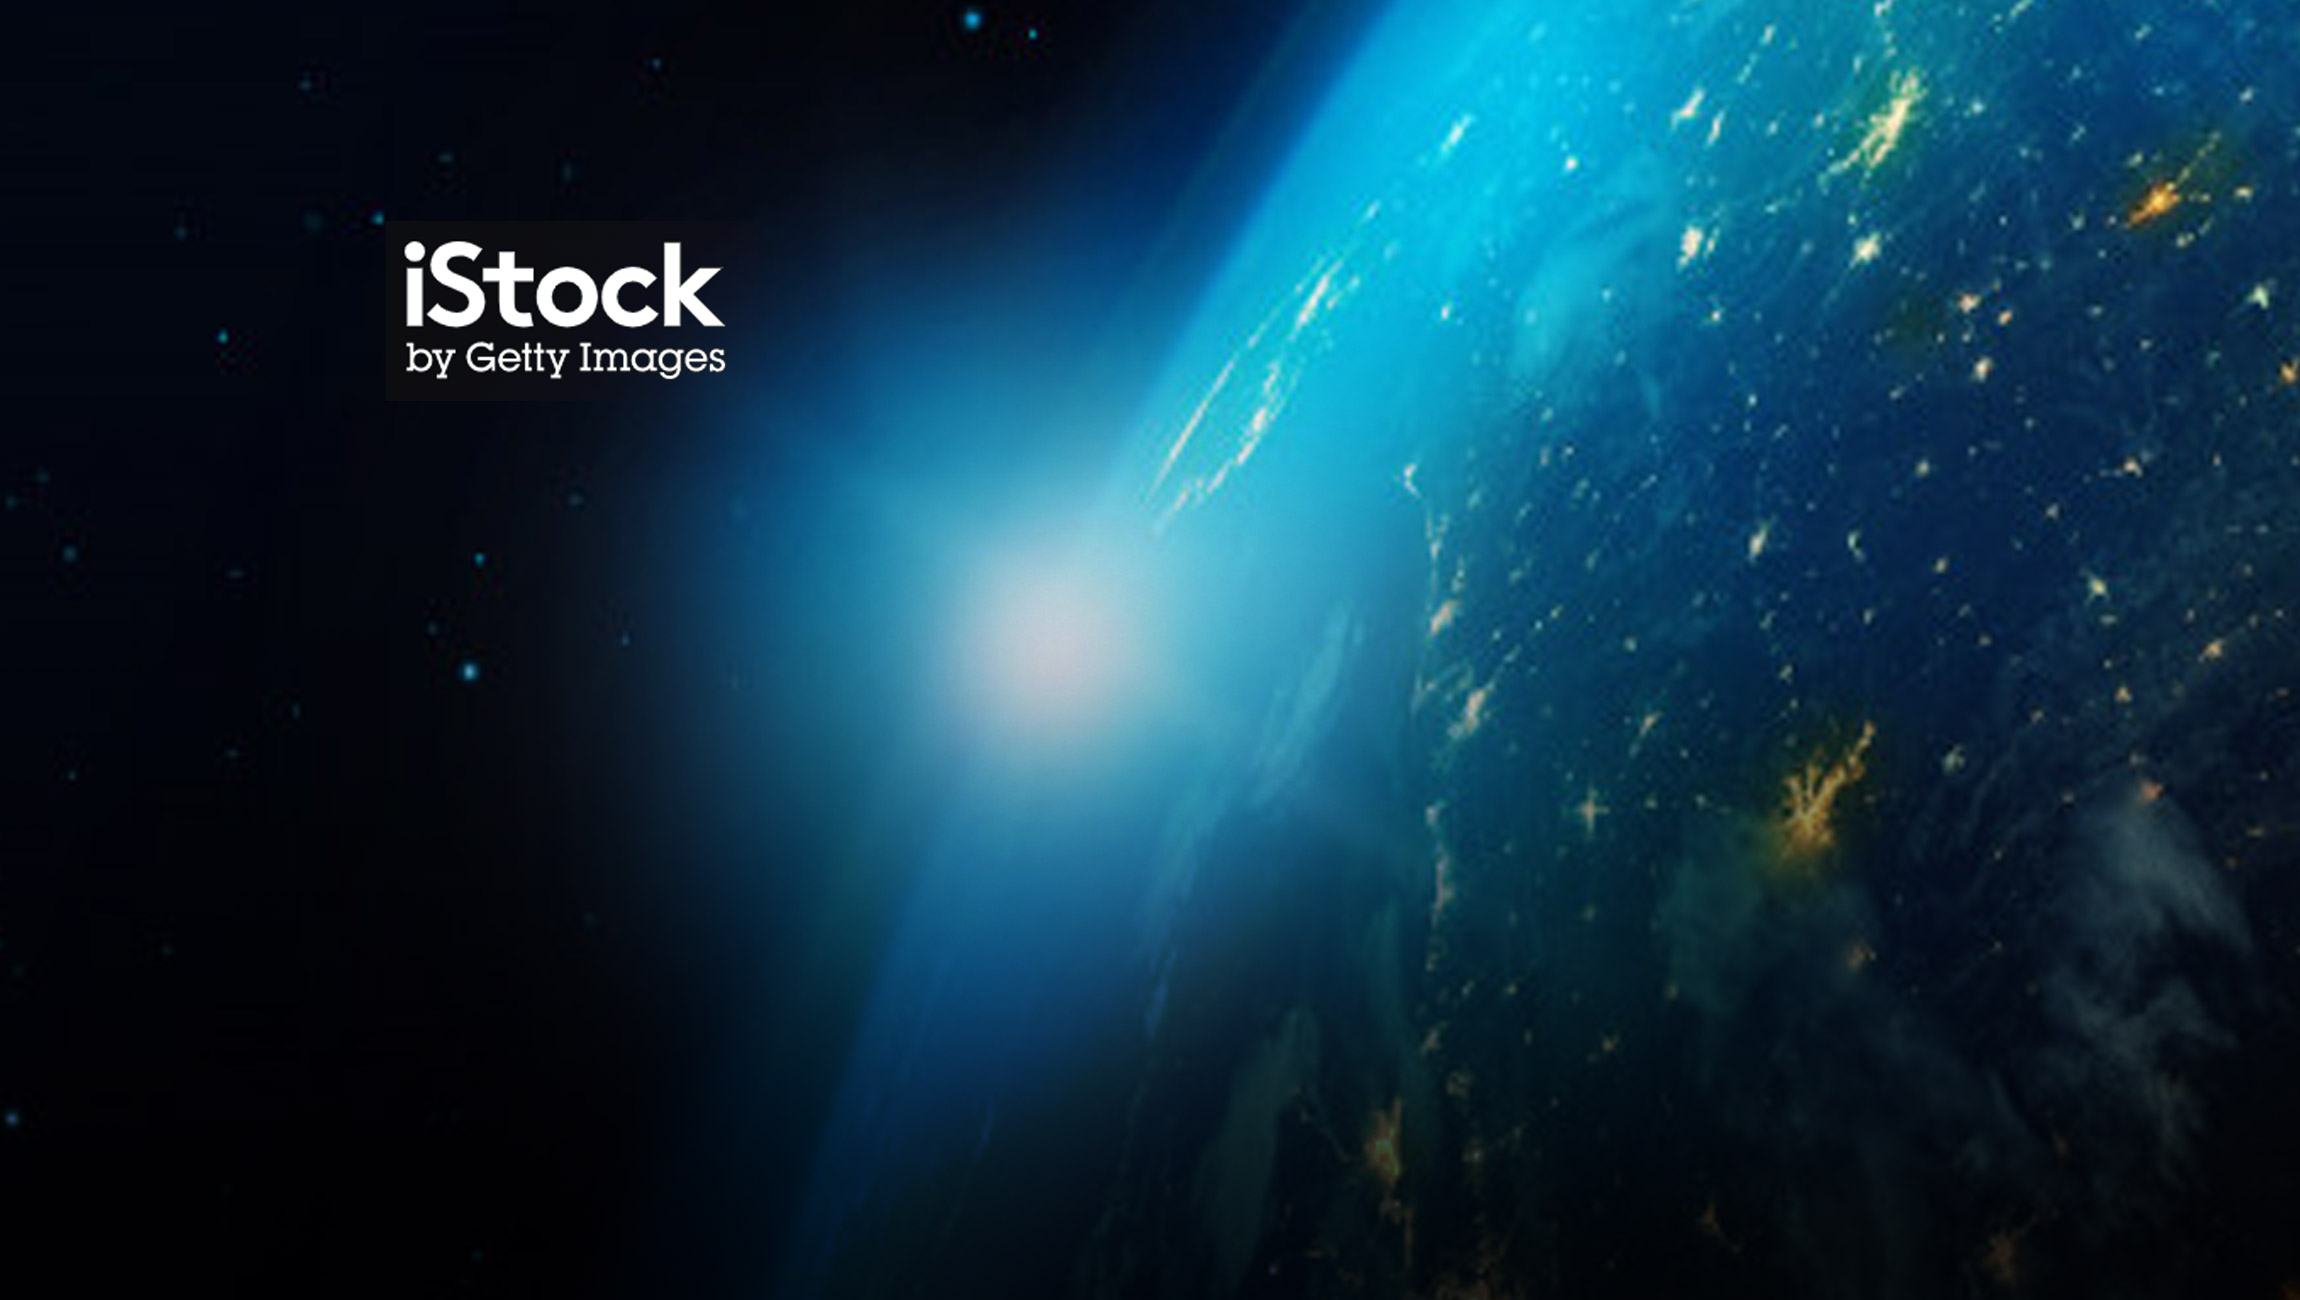 iStock Releases 2021 Visual Trends to Support SMBs and SMEs in Better Engaging Customers